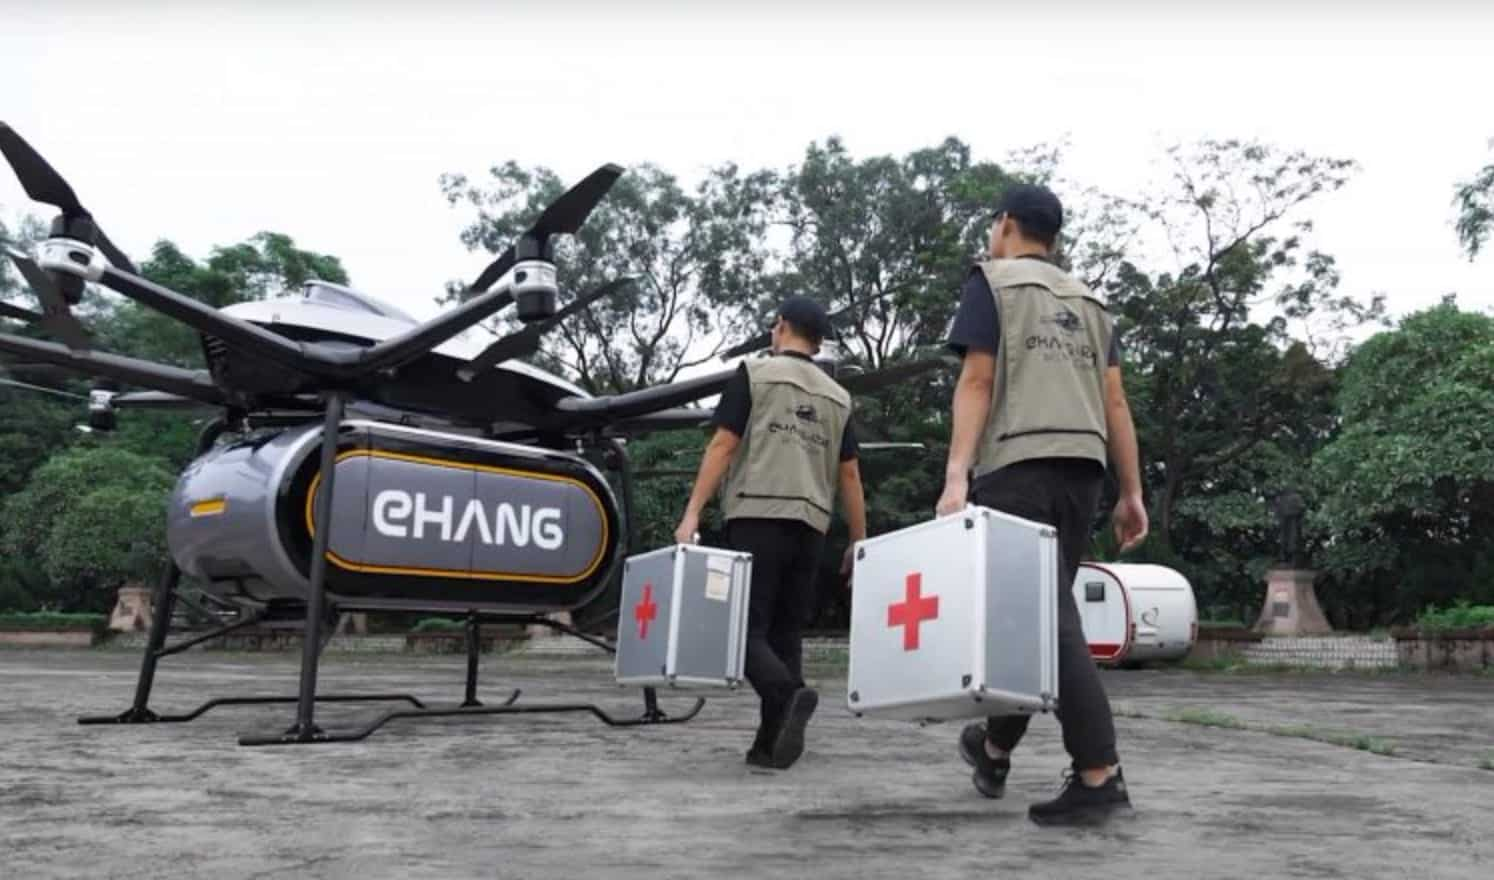 EHang presents cargo drone with a payload of 440 Lbs